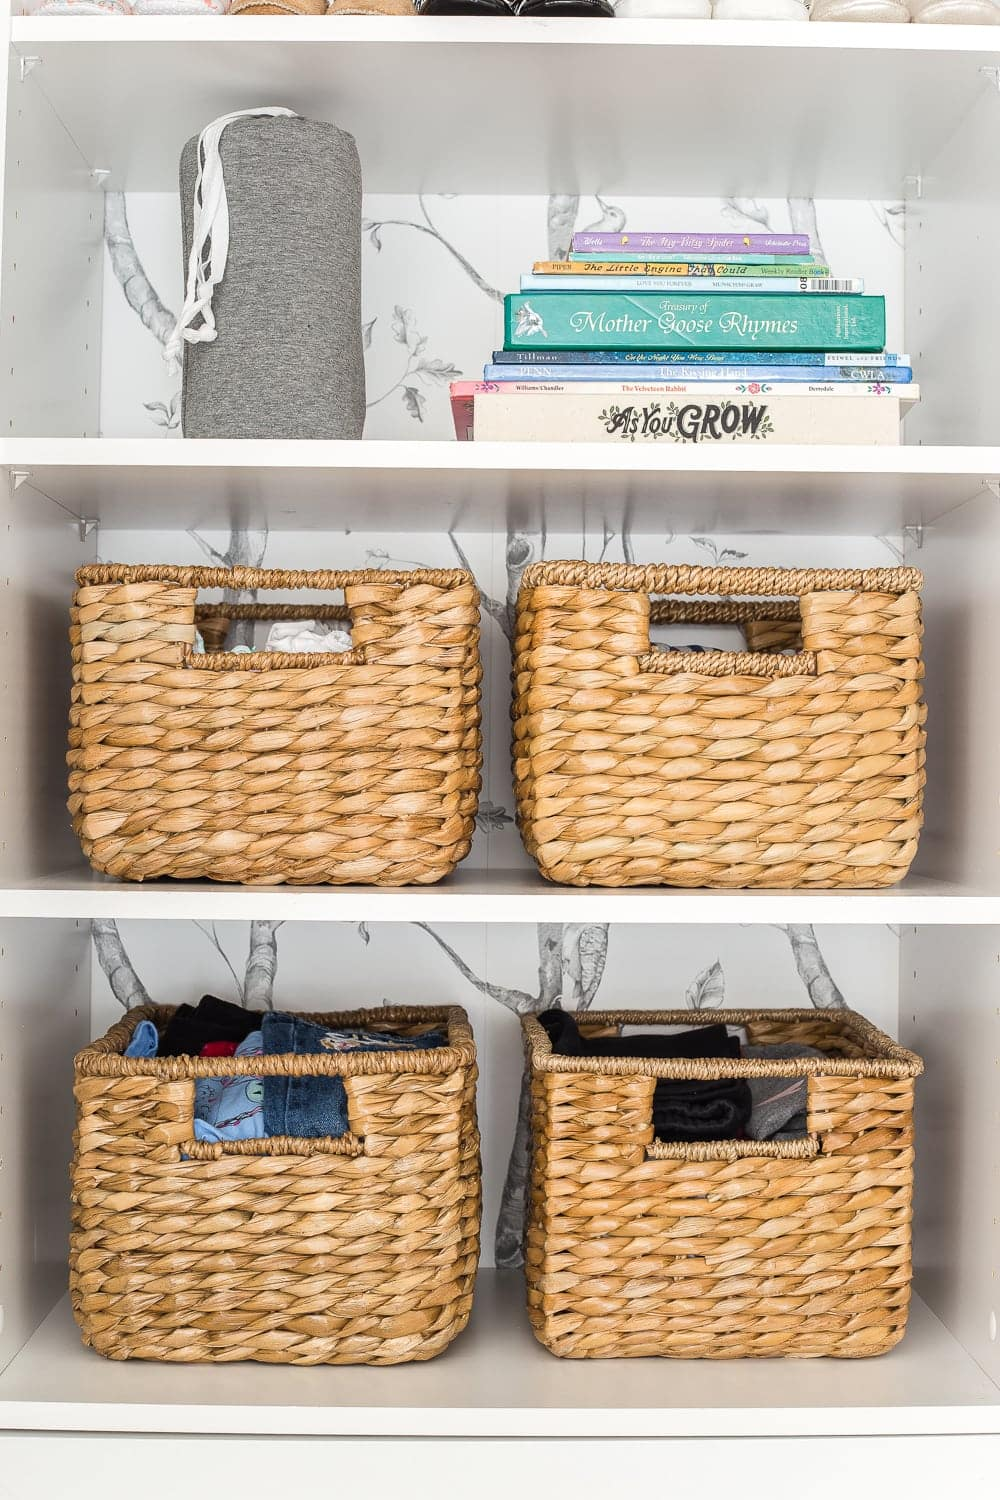 Nursery closet organization with baskets and shelving for books